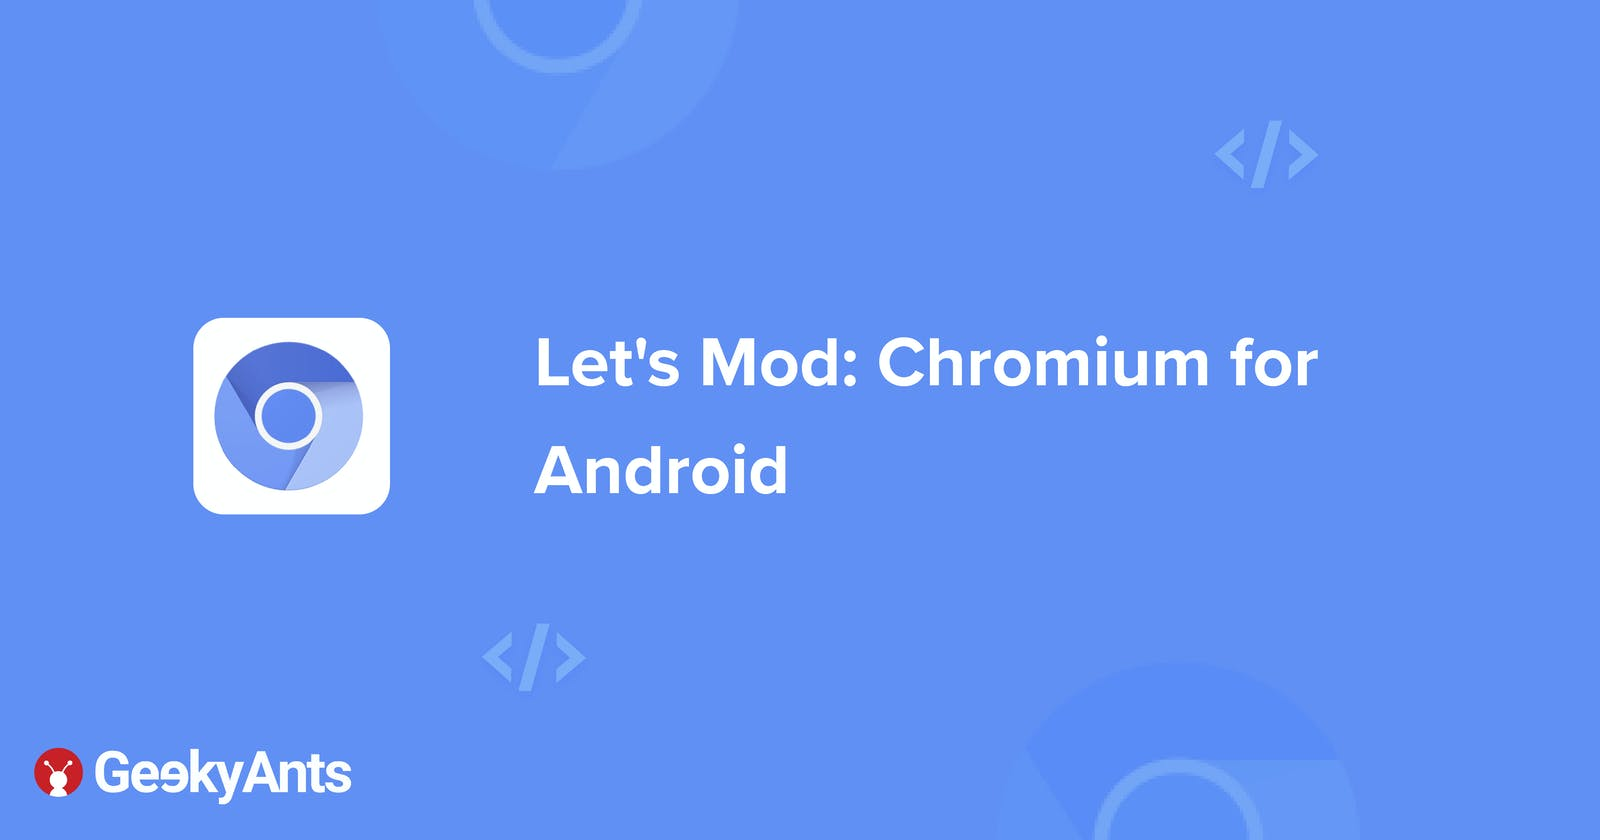 Let's Mod: Chromium for Android